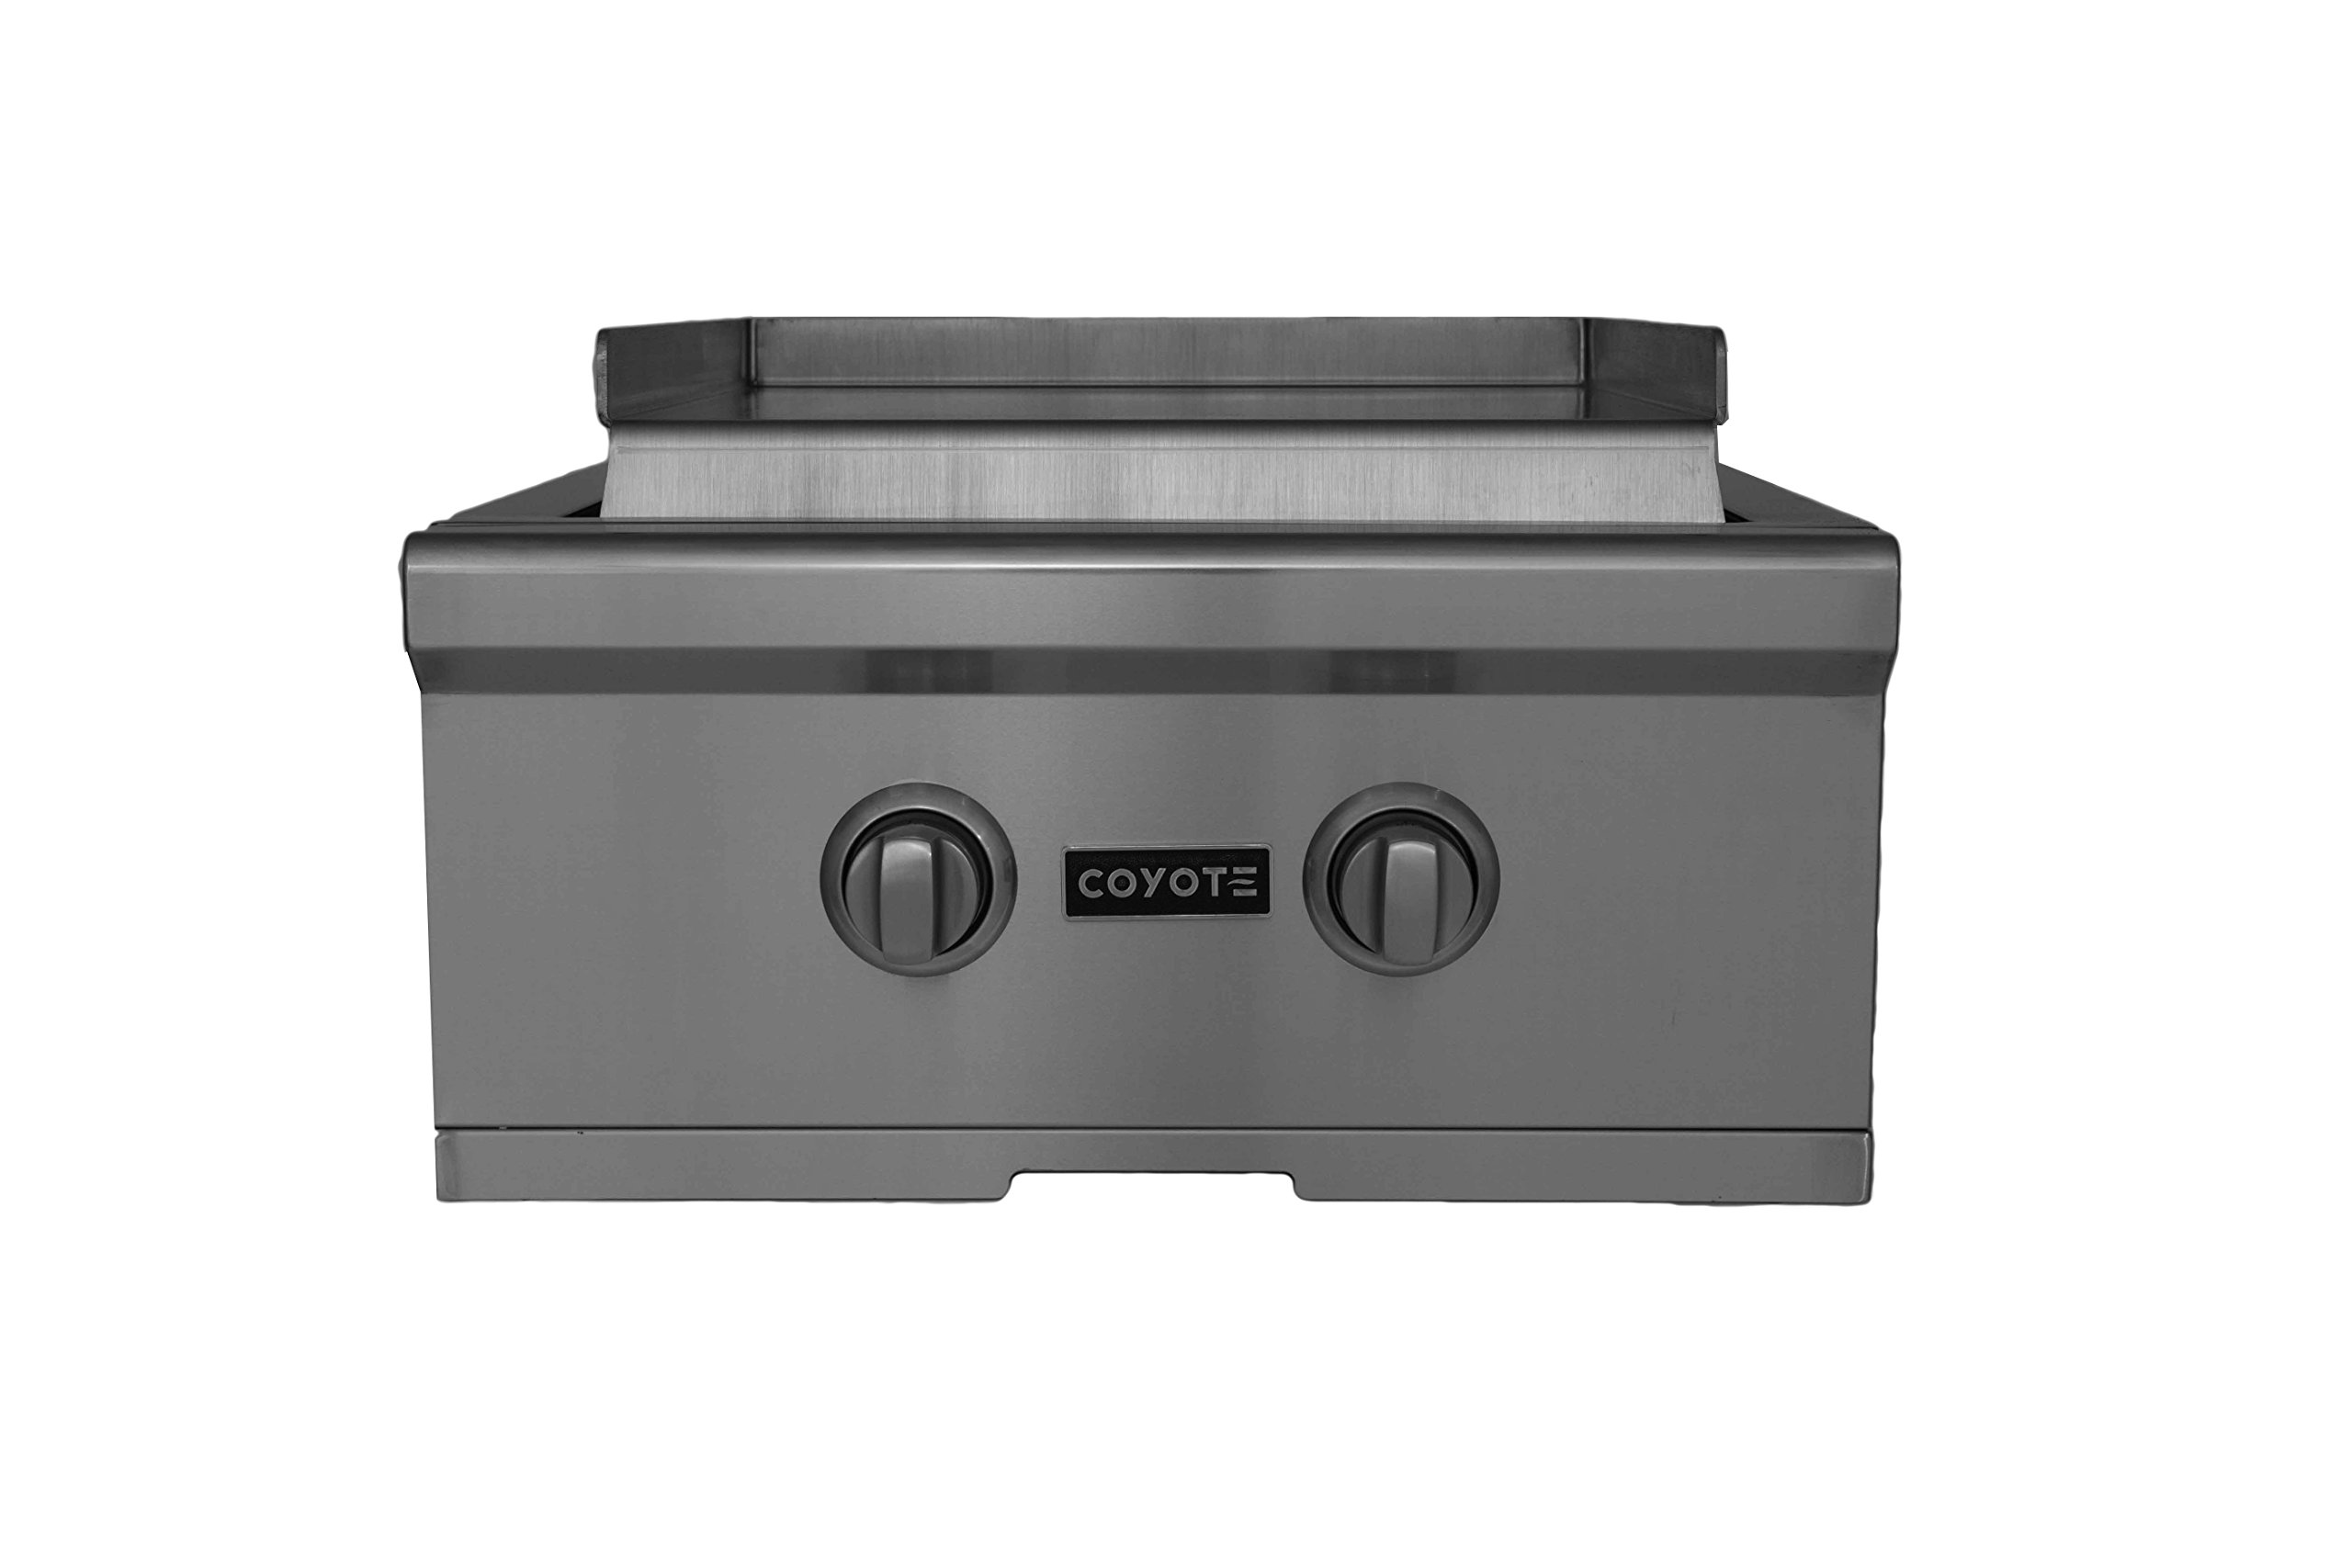 Coyote CTEP Teppanyaki Griddle Accessory